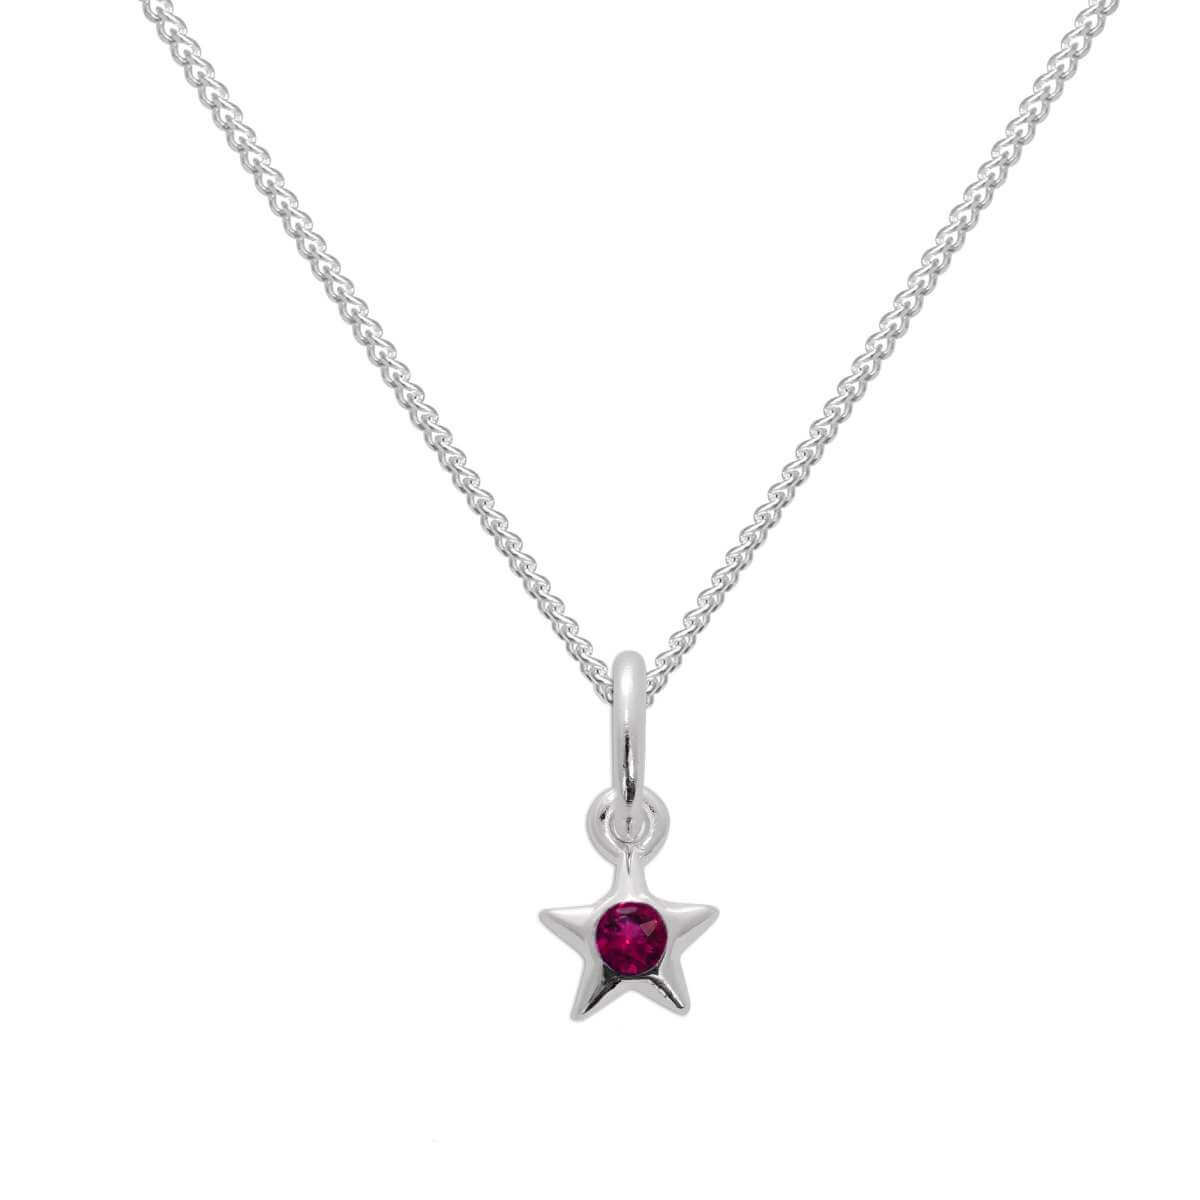 Sterling Silver & Garnet CZ Crystal January Birthstone Star Pendant Necklace 14 - 32 Inches